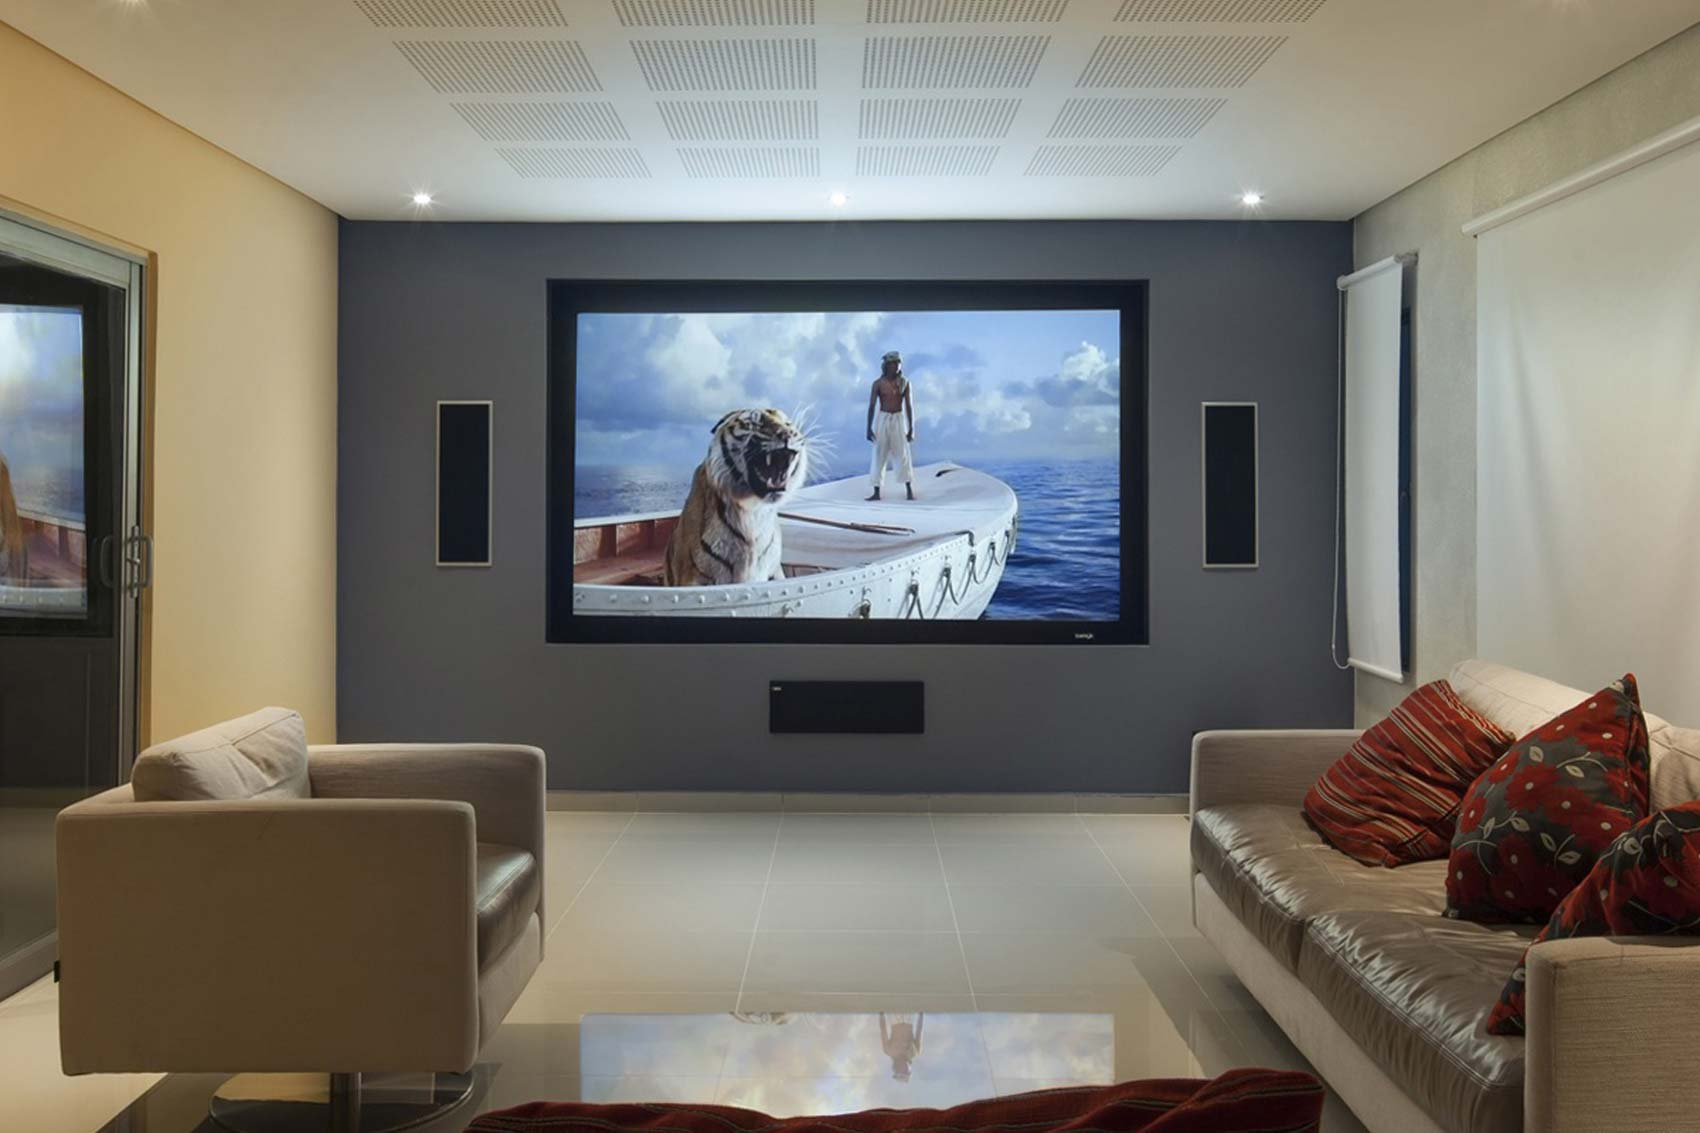 4:3 Cinema Black Velvet Fixed Frame Projector Screen 100 Inch 3D Projection Screen Best For Home Theater